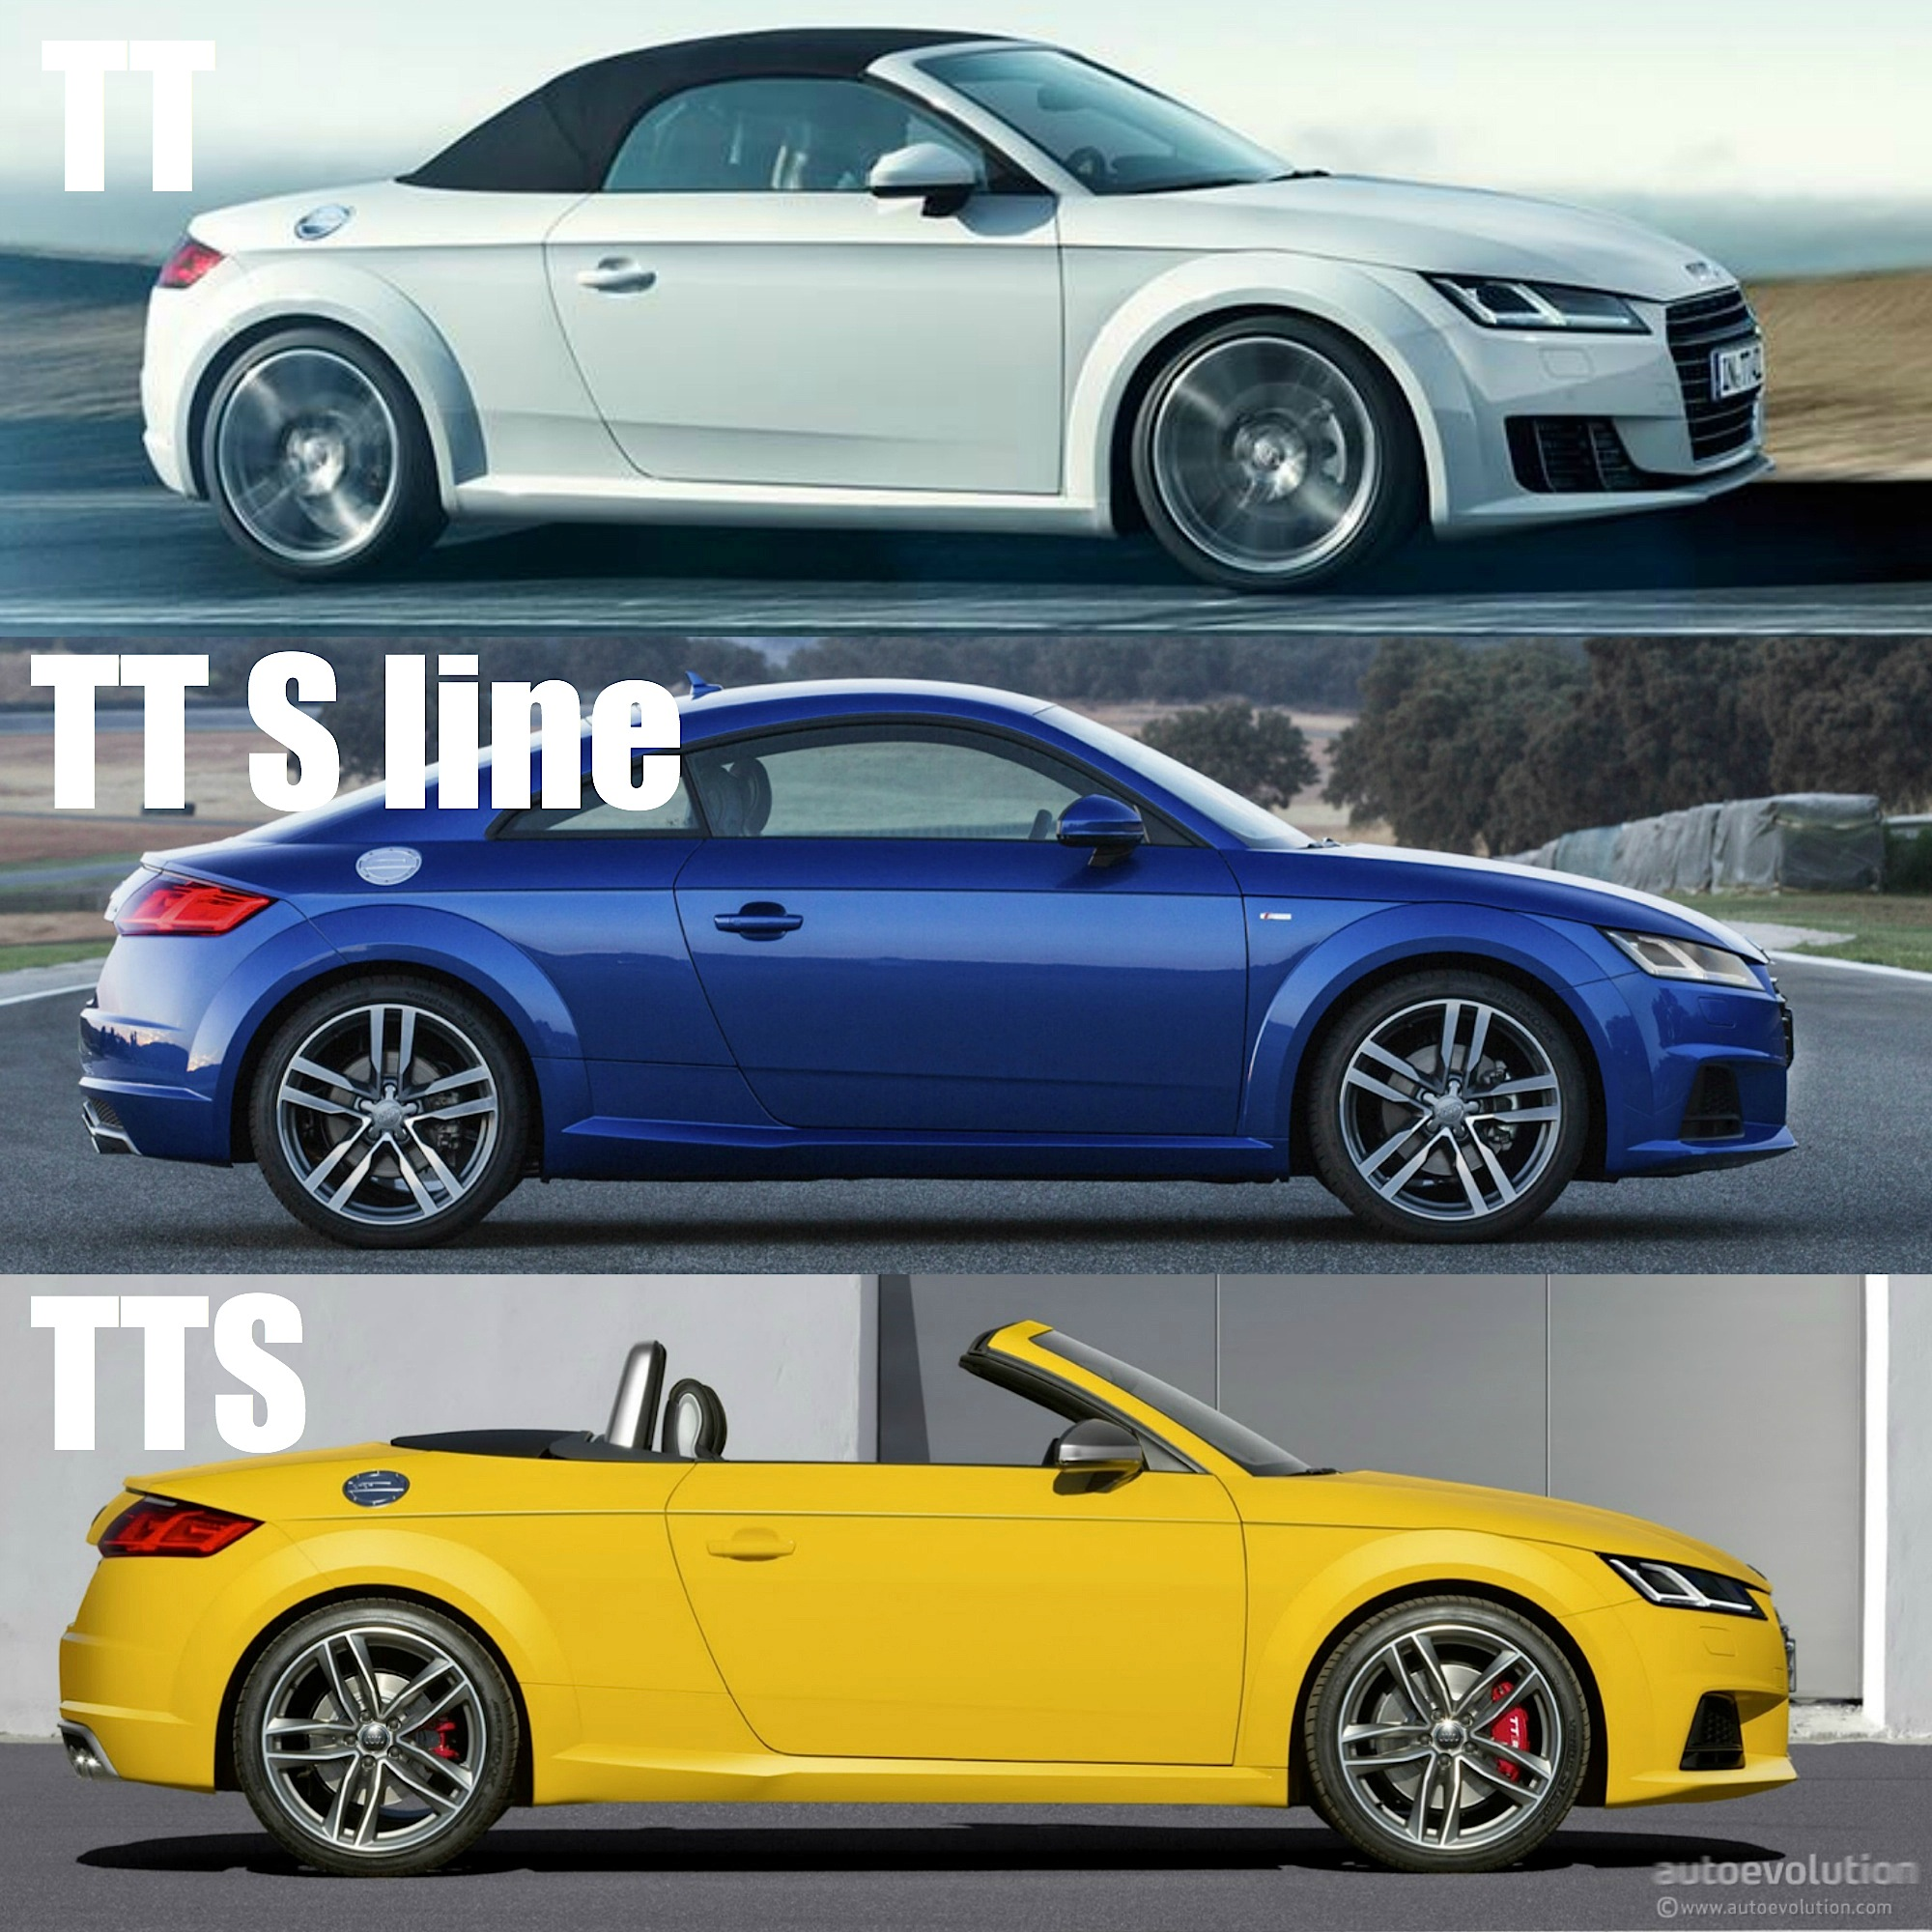 2015 audi tt tt s line and tts how to tell them apart autoevolution. Black Bedroom Furniture Sets. Home Design Ideas